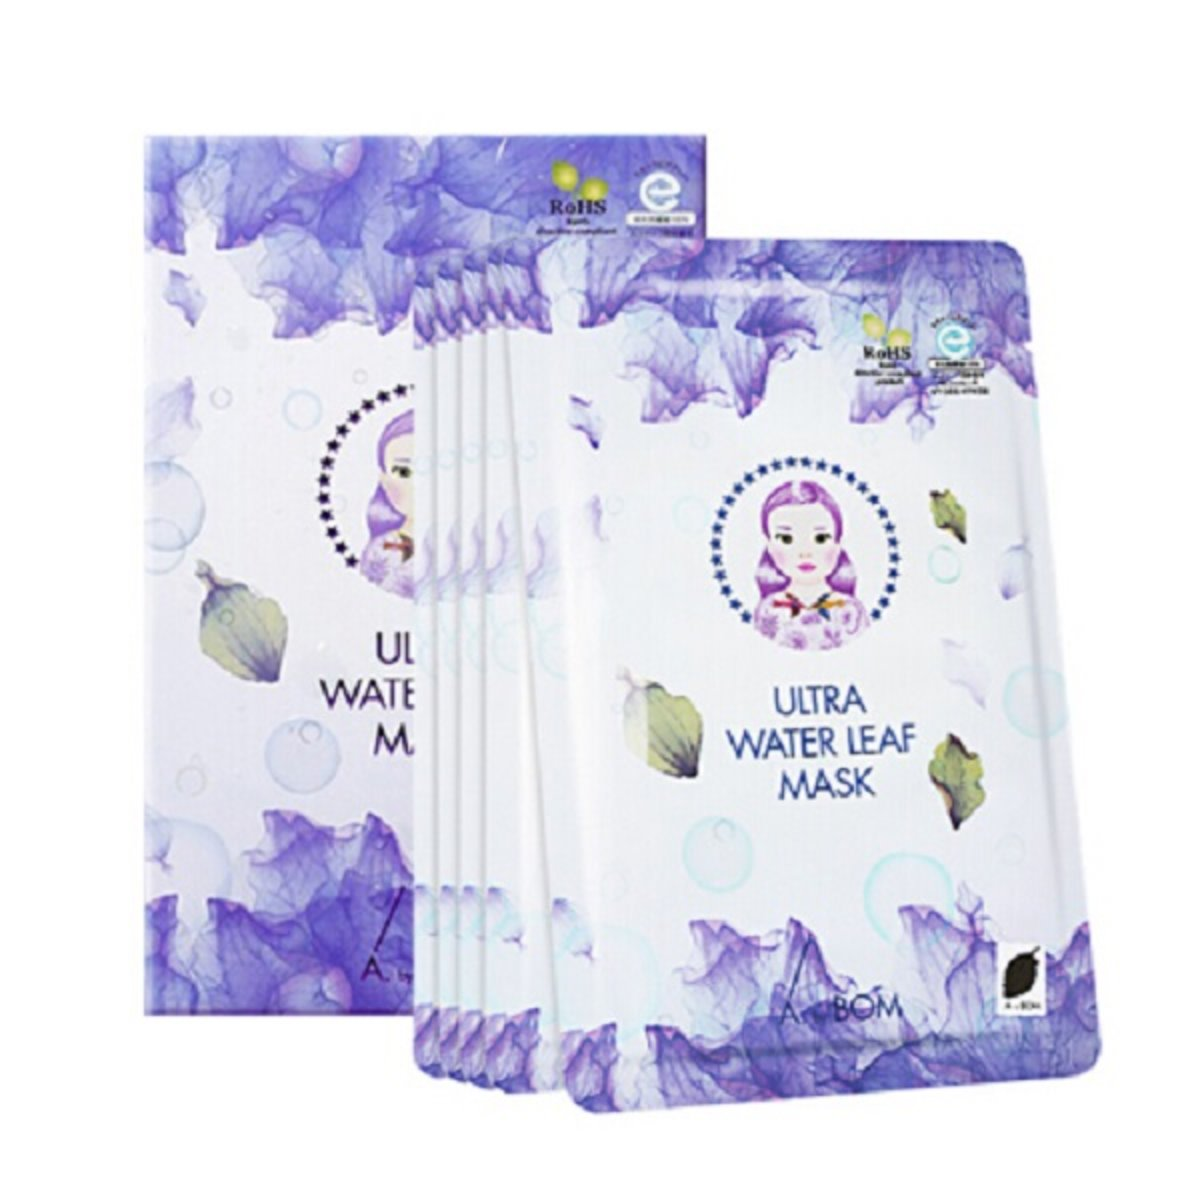 Purple Leaf Mask 5 pieces / box [Parallel Import]  [Expired Day: 12/3/2021]